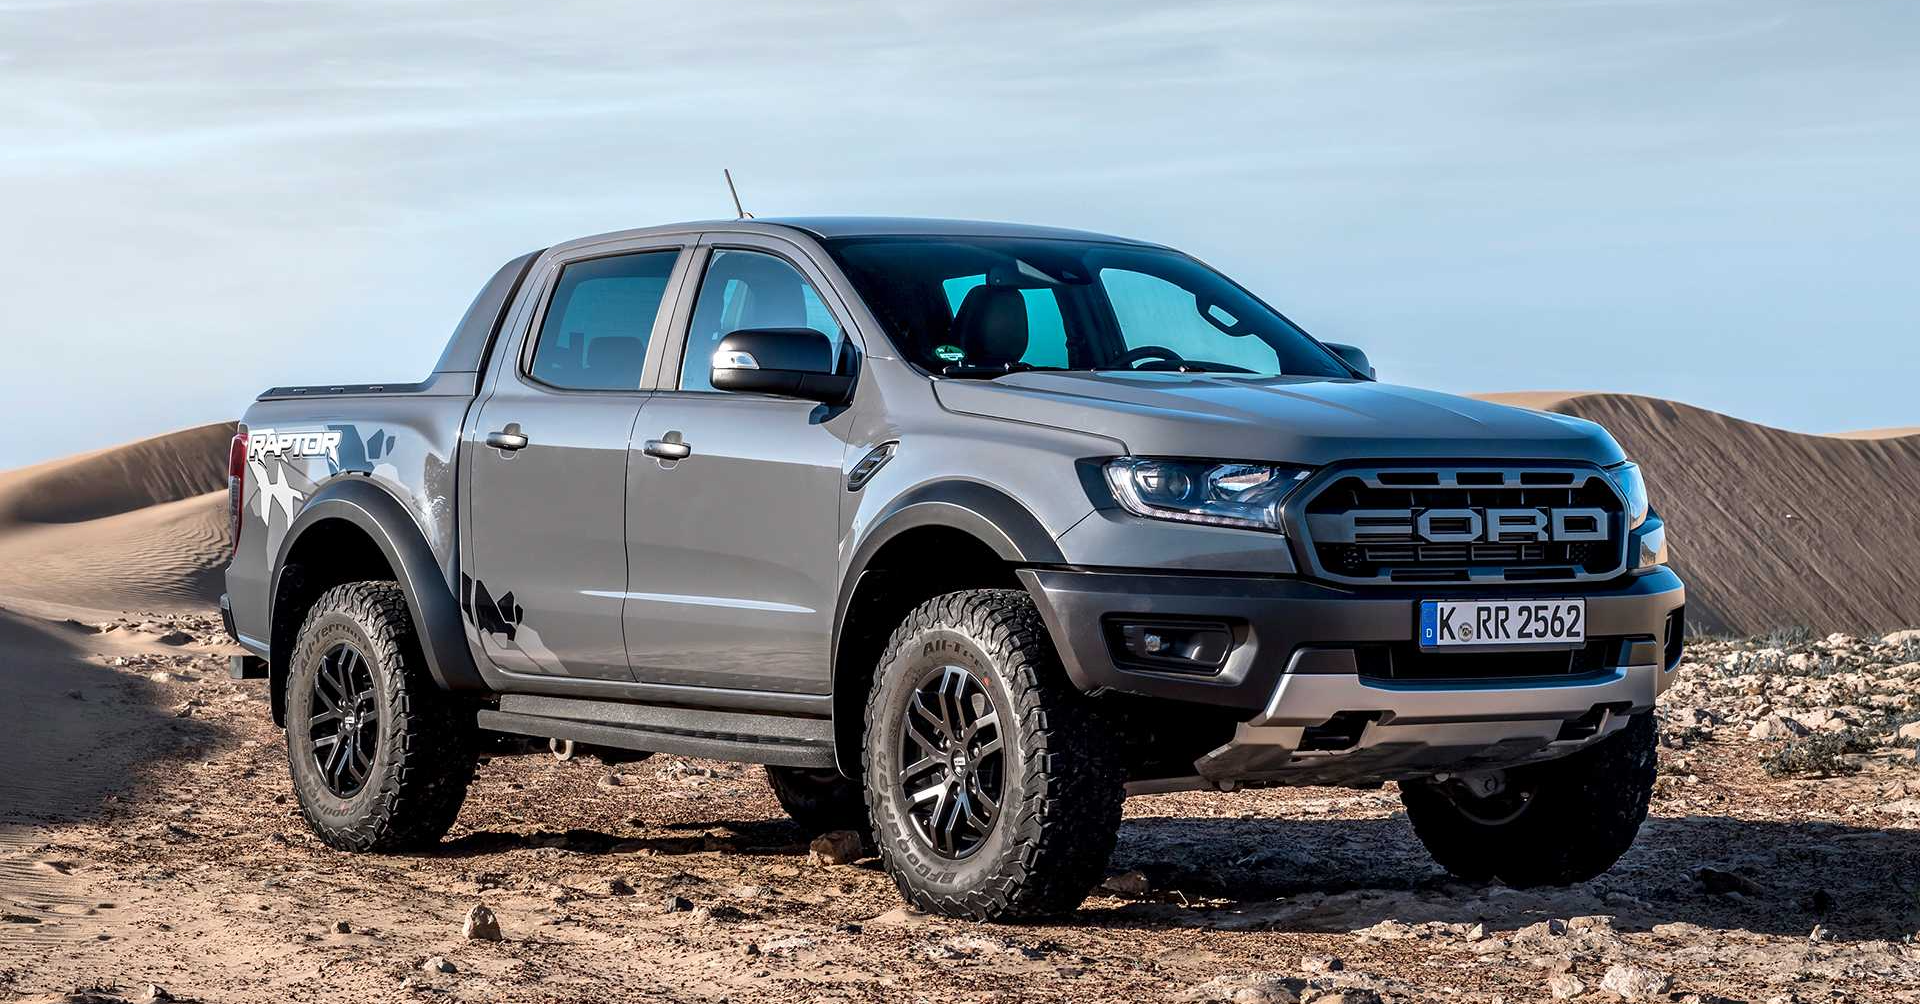 Is the Ford Ranger Going to Bring the Raptor?